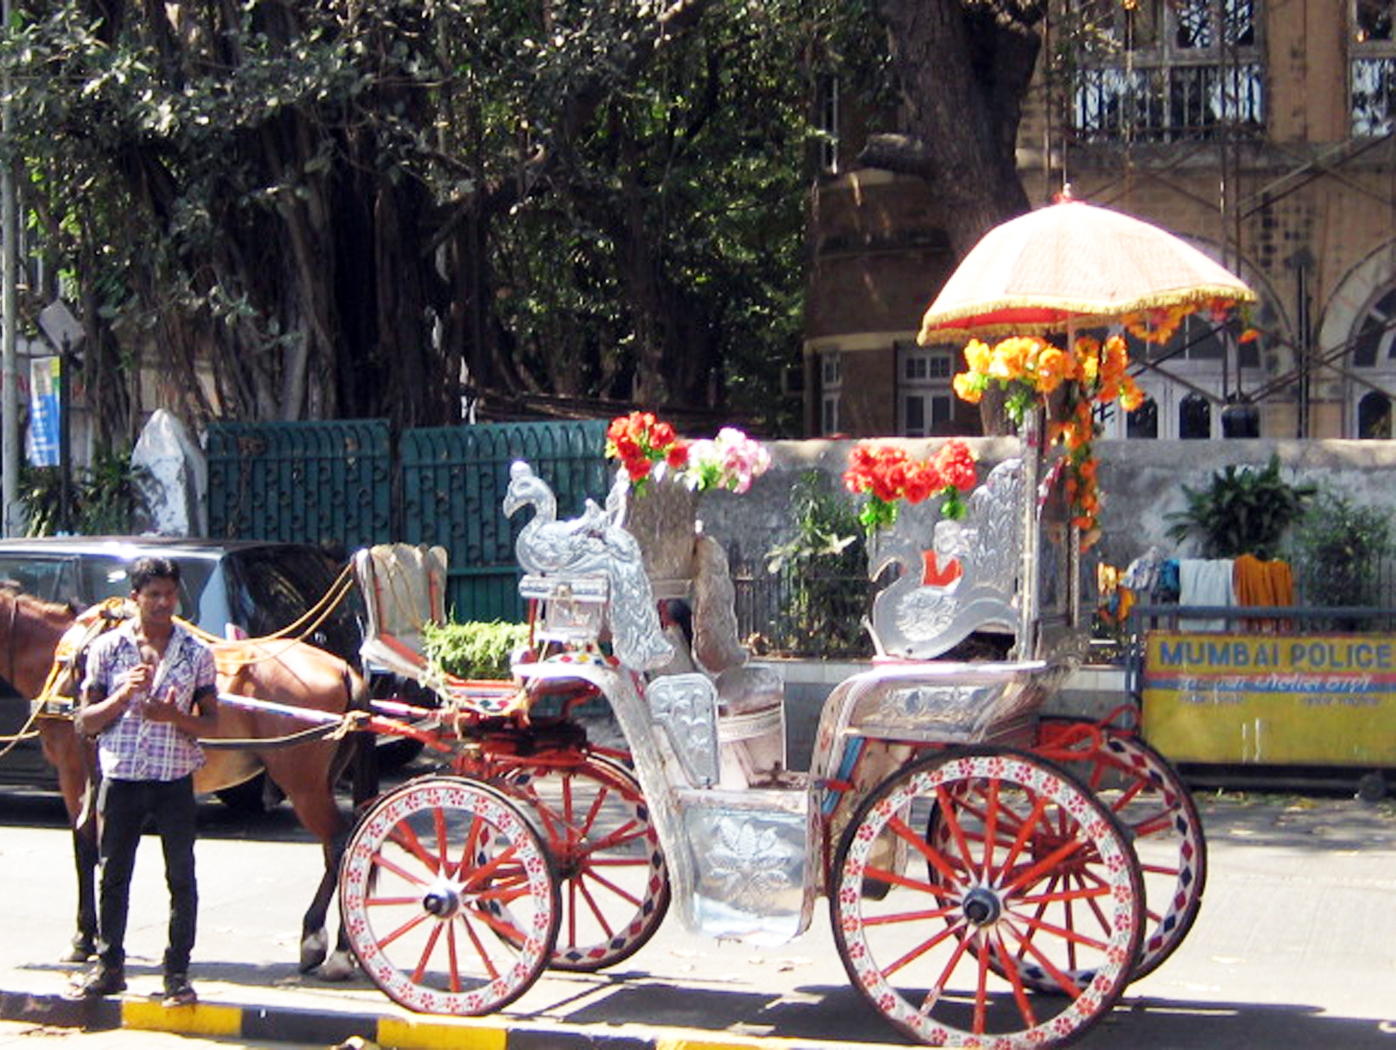 Horse Carriage, Carriage, Cart, Horse, India, HQ Photo